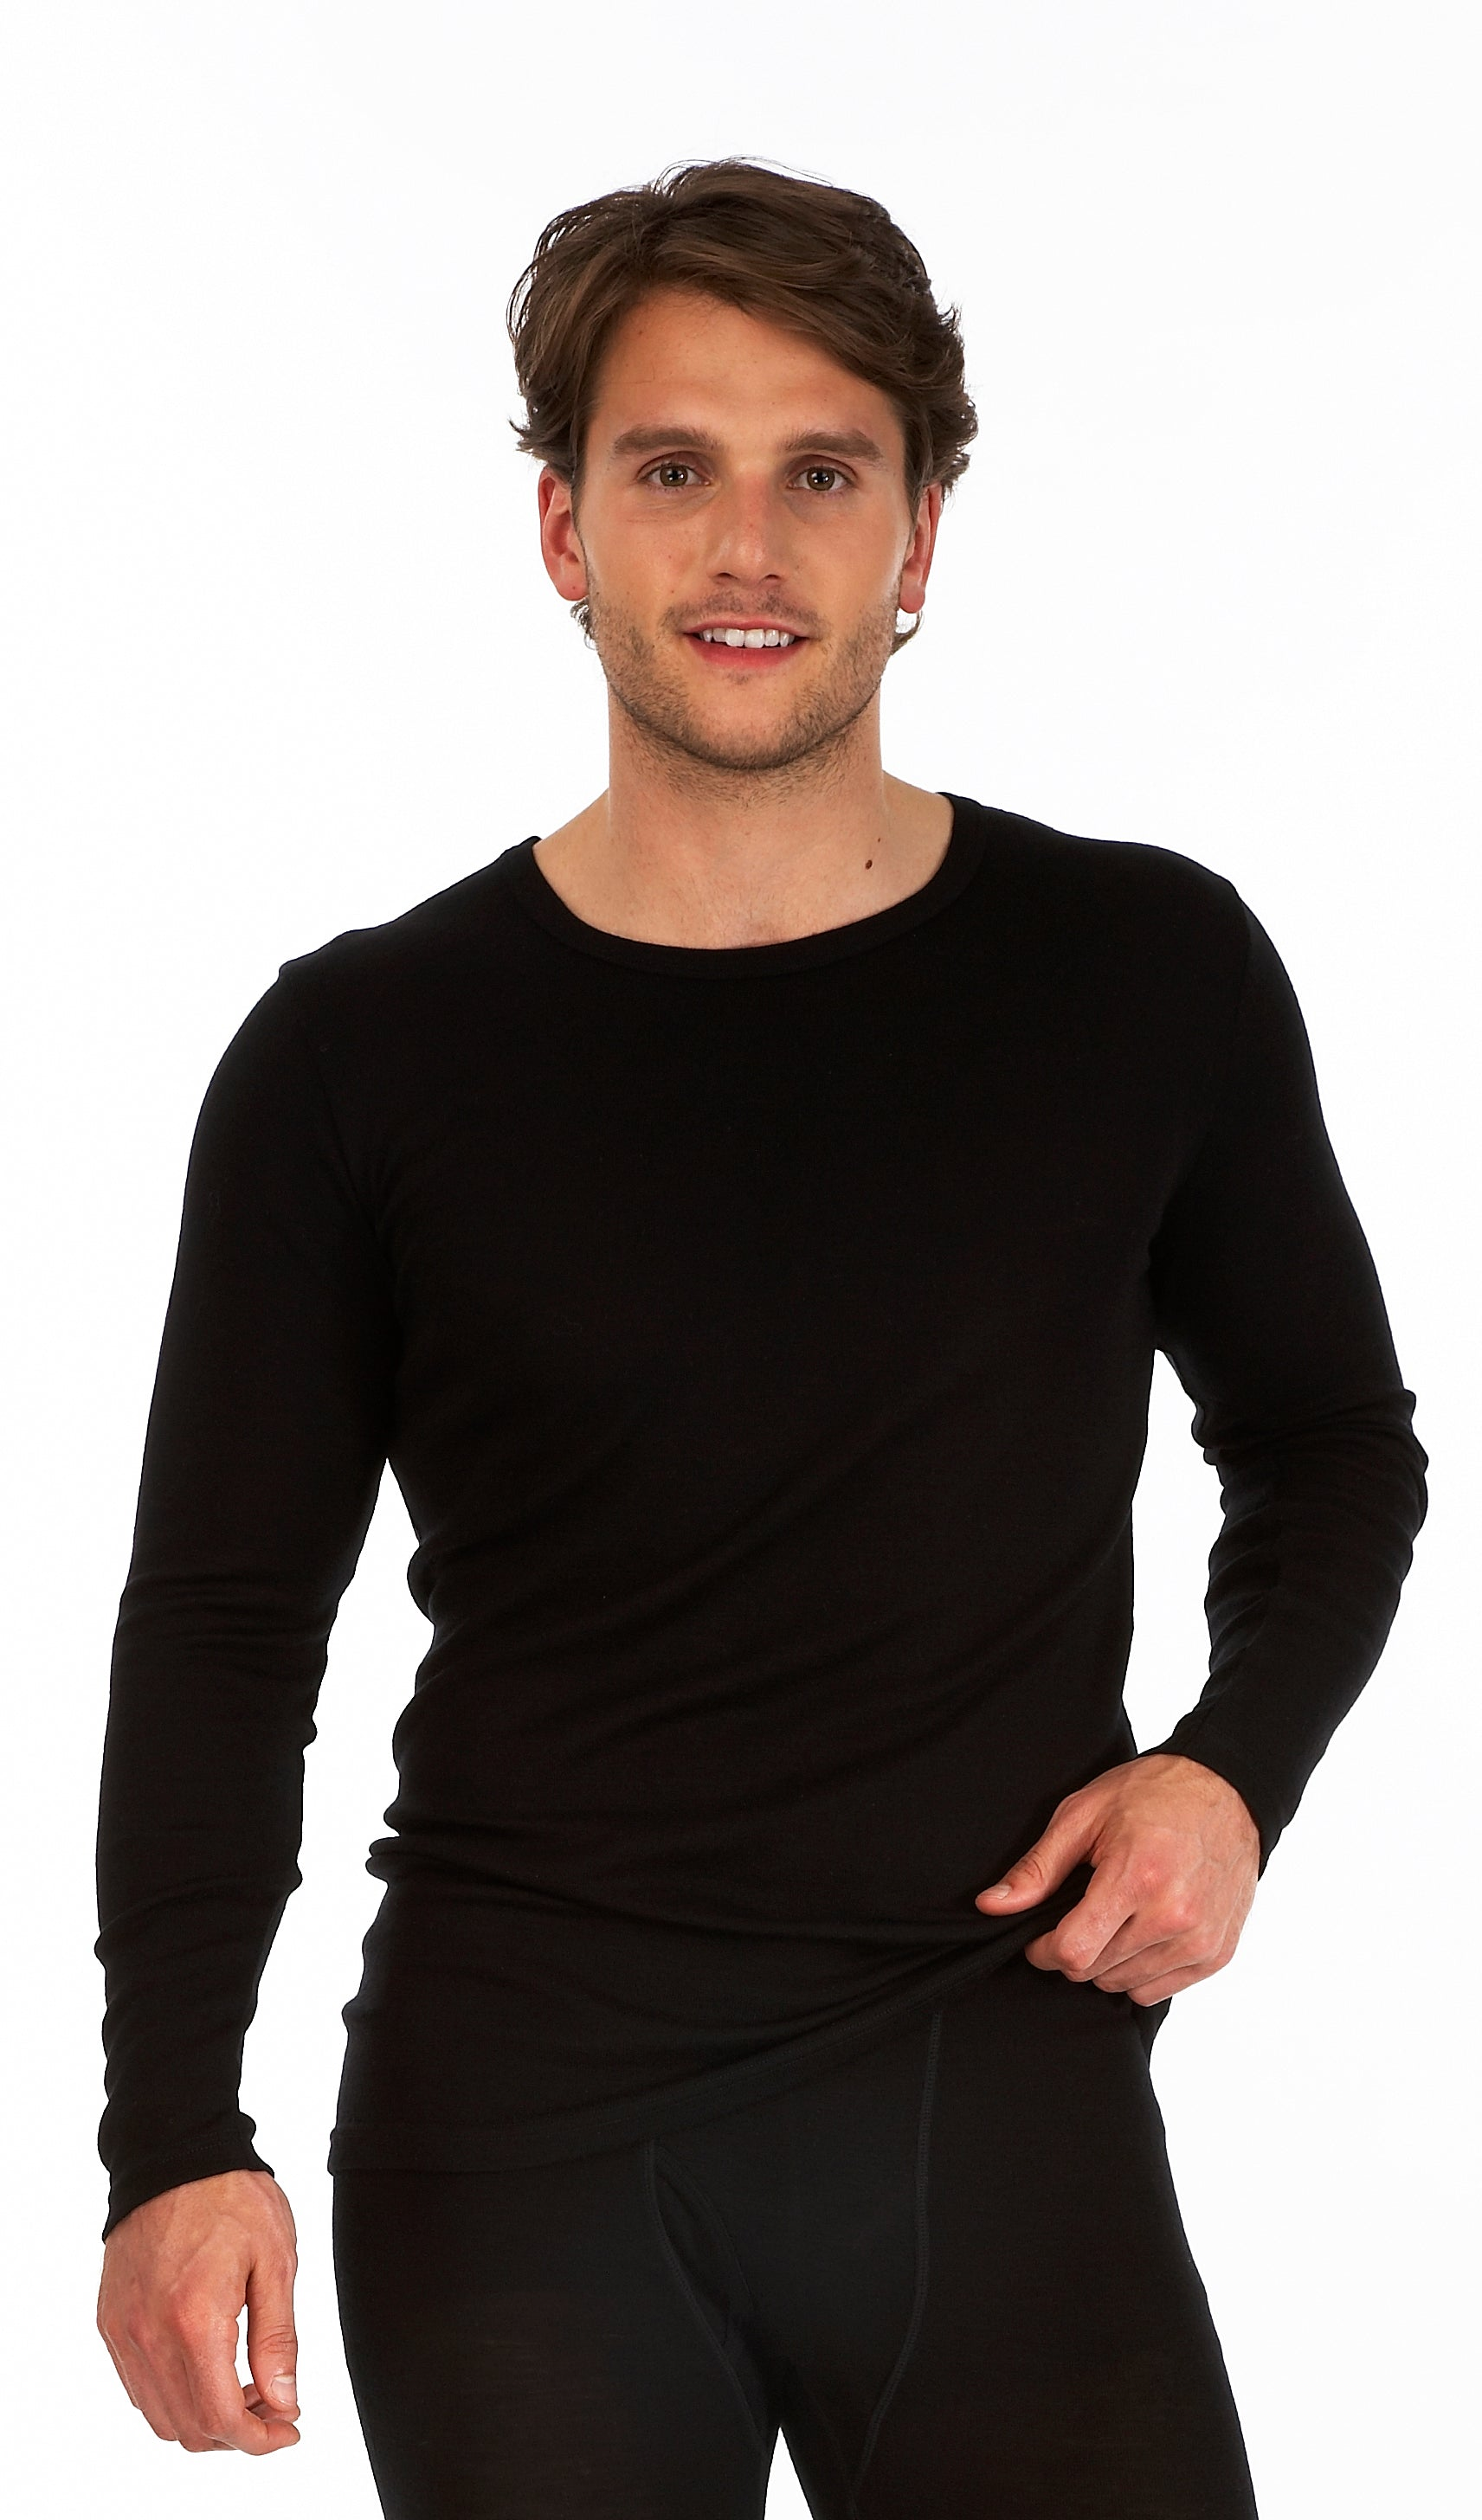 Long Sleeve Round Neck Thermal Top Base Layer